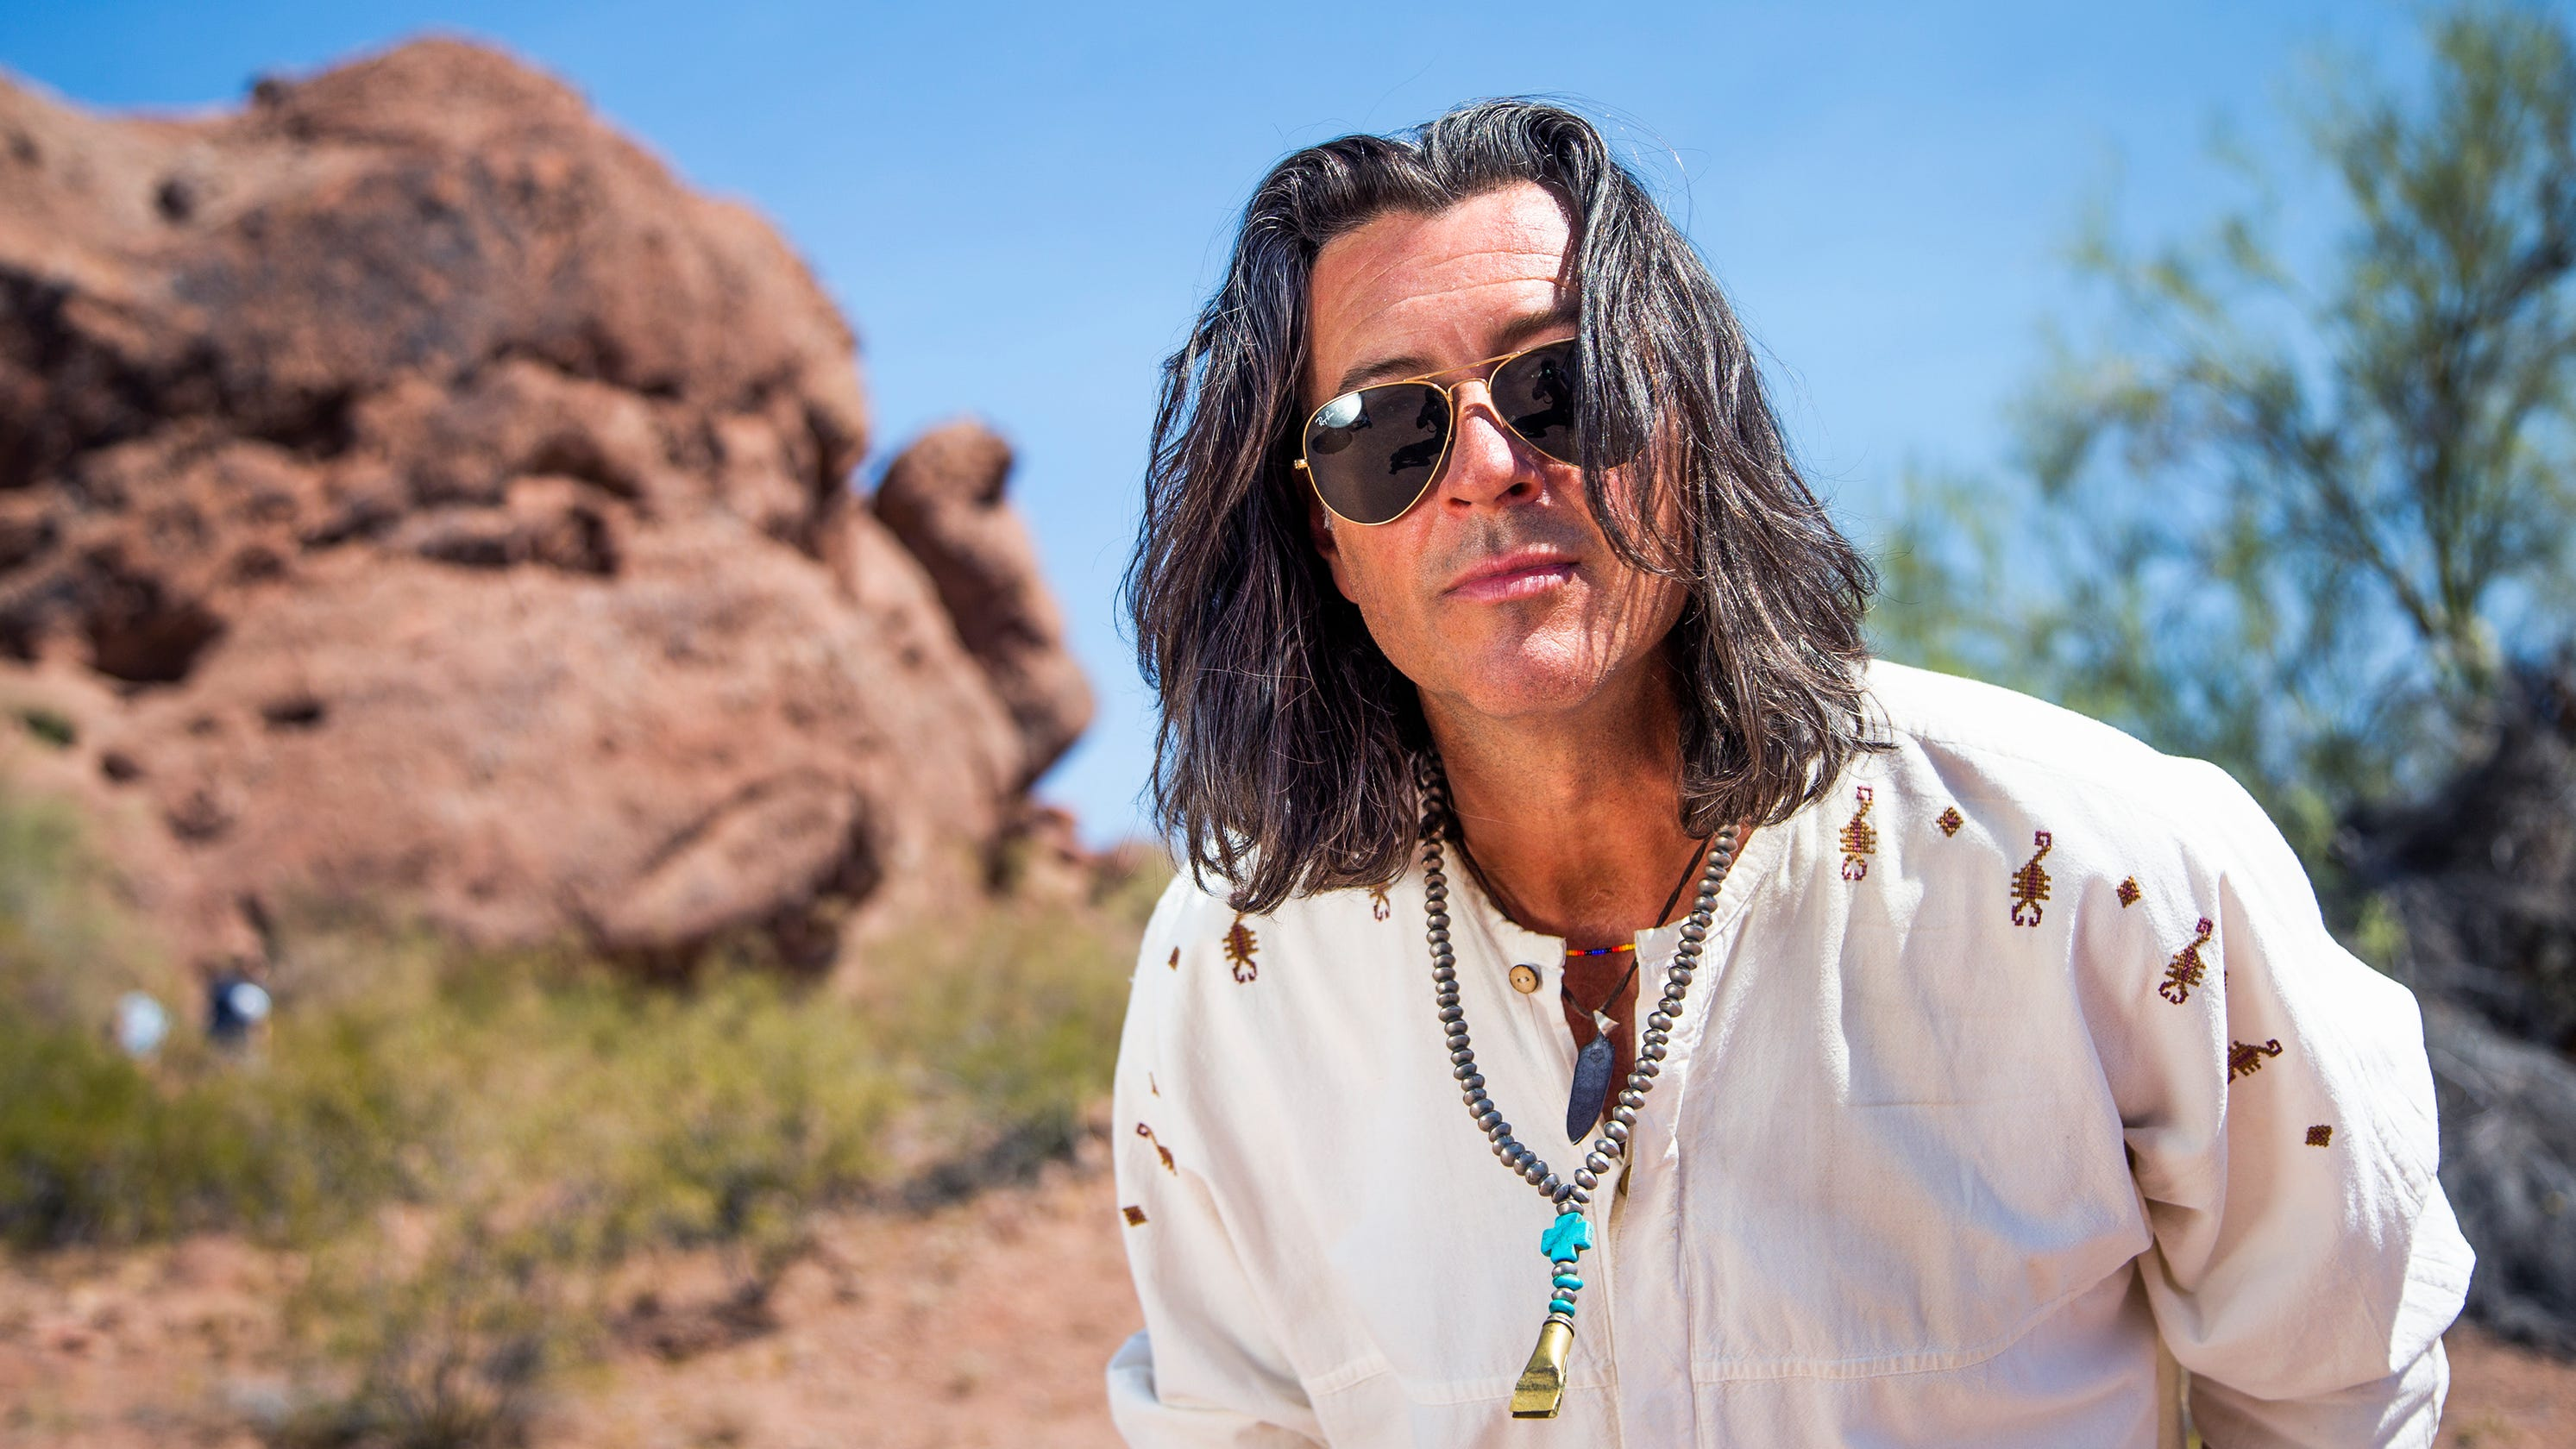 Local music picks for Phoenix: Roger Clyne & the Peacemakers, Calabrese, Carol Pacey